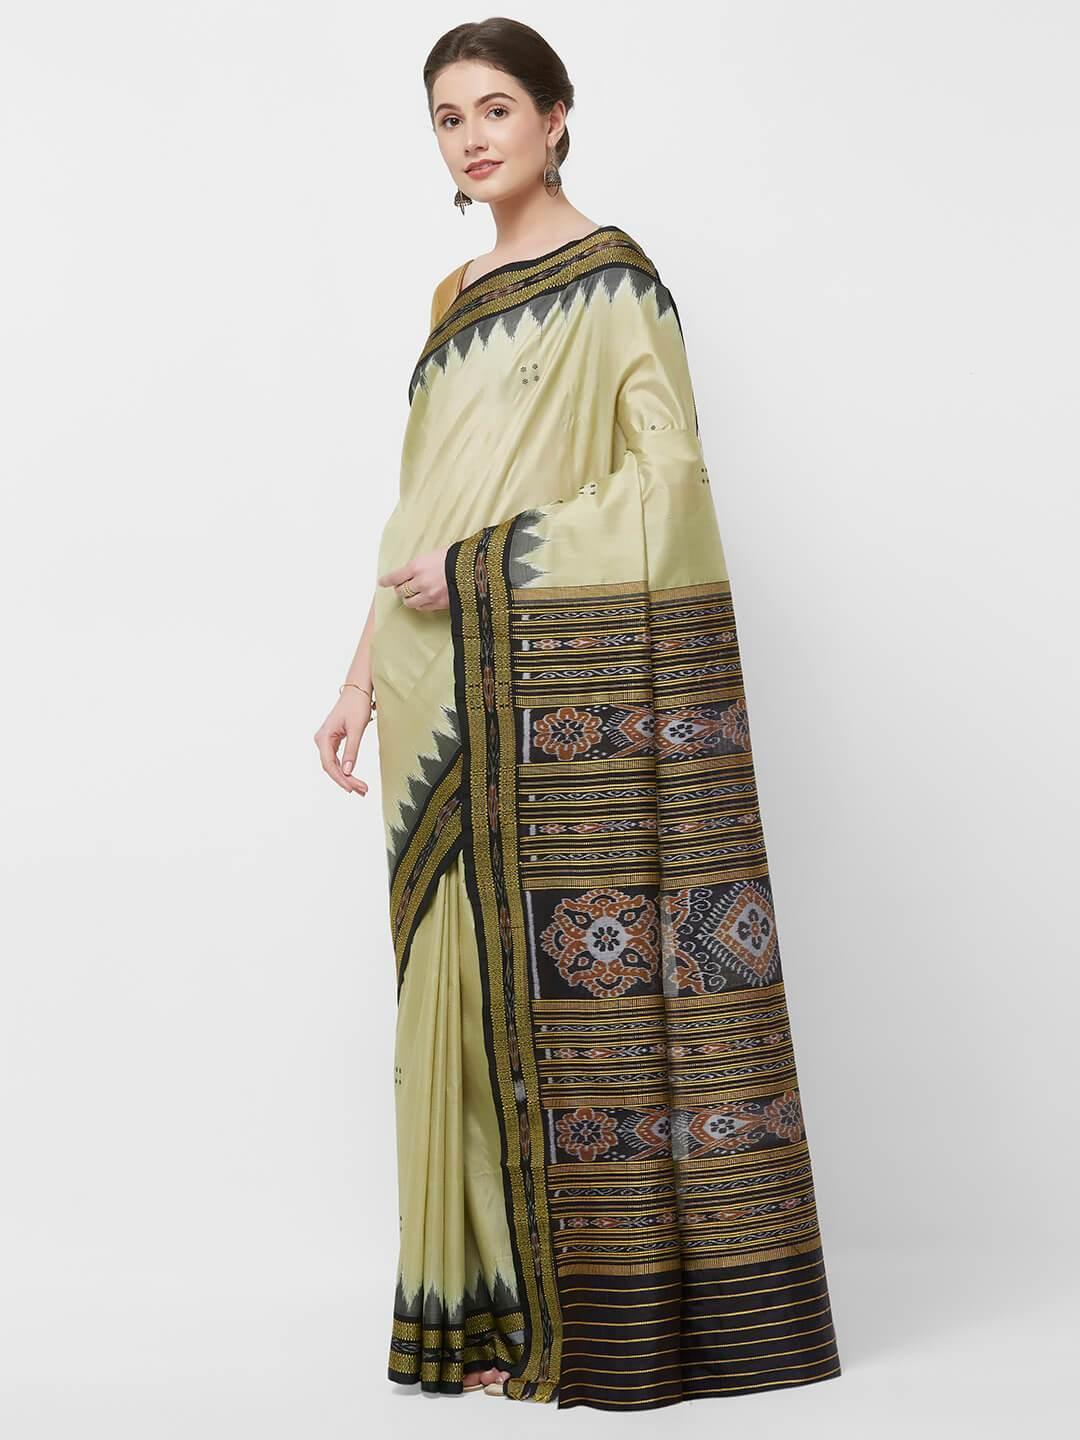 CraftsCollection.in -Beige and Black Odisha Sambalpuri Silk Saree